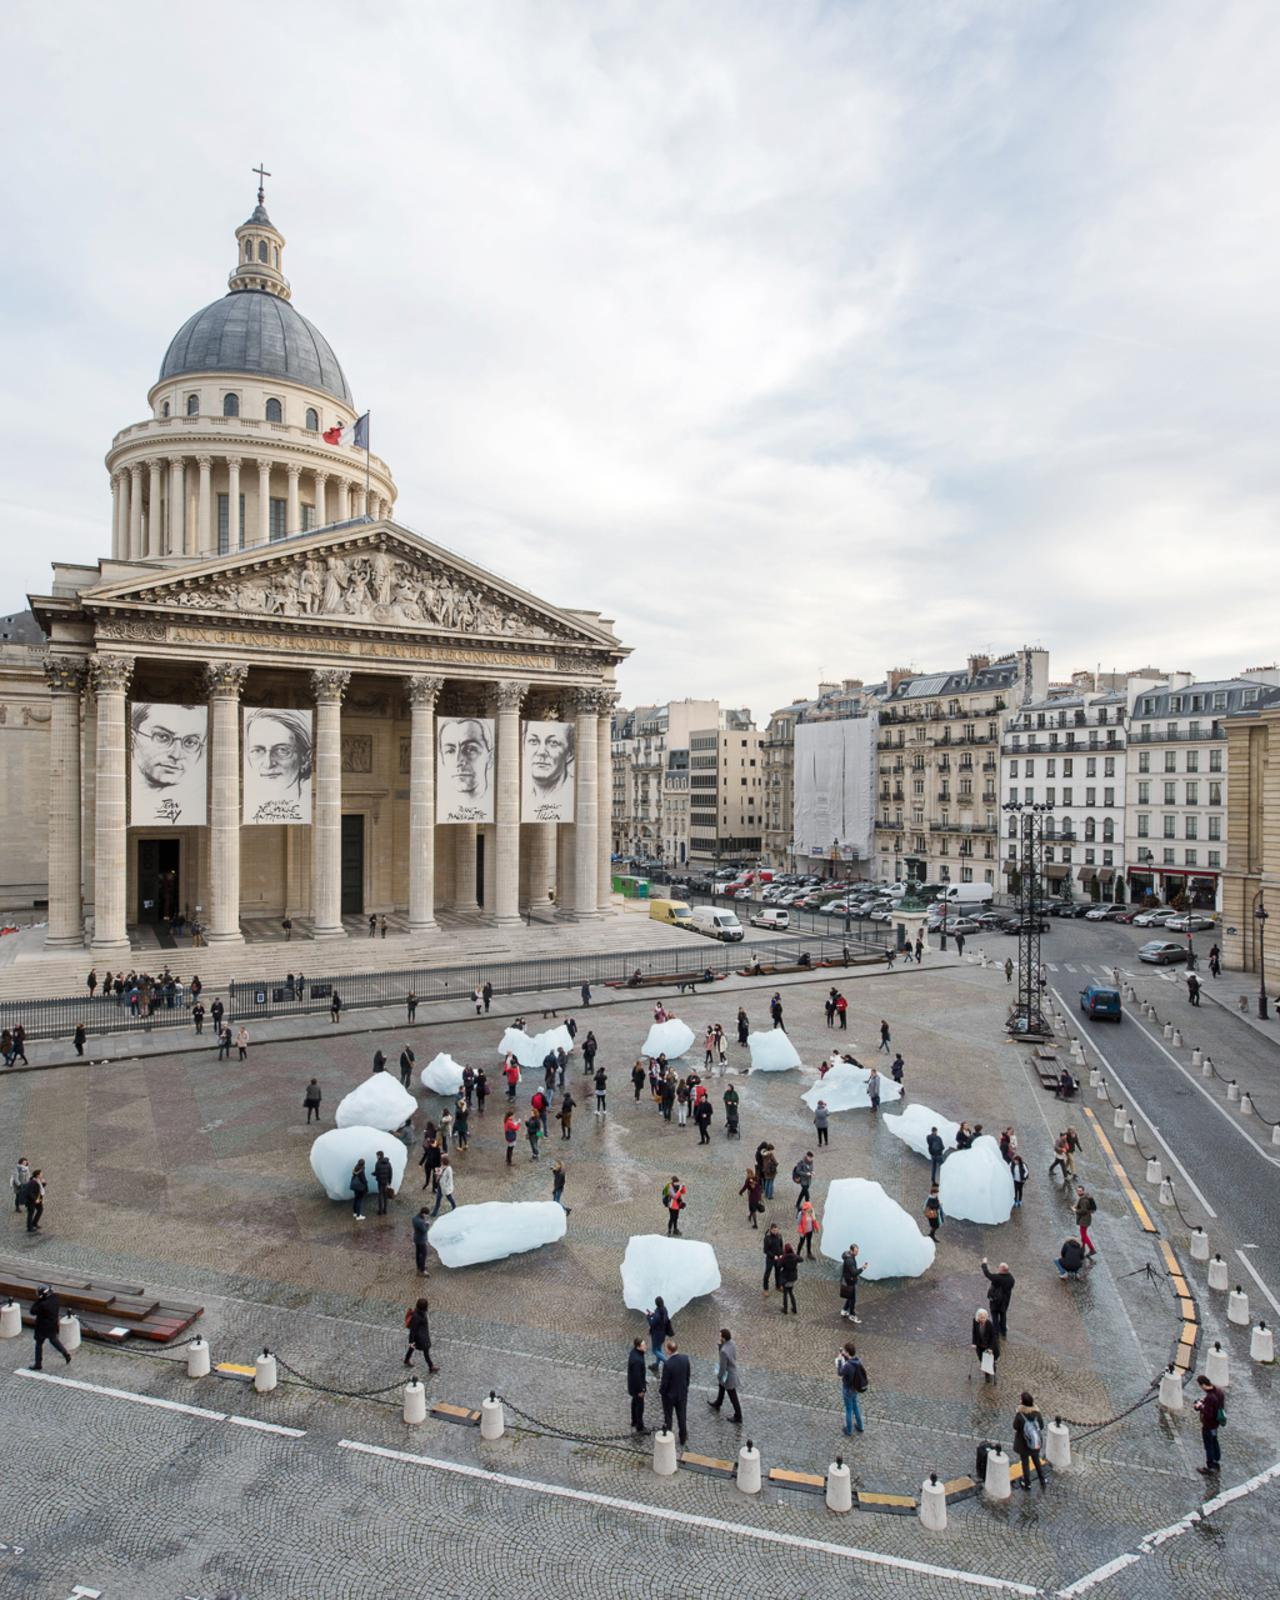 Place du panthe on ice watch olafur eliasson